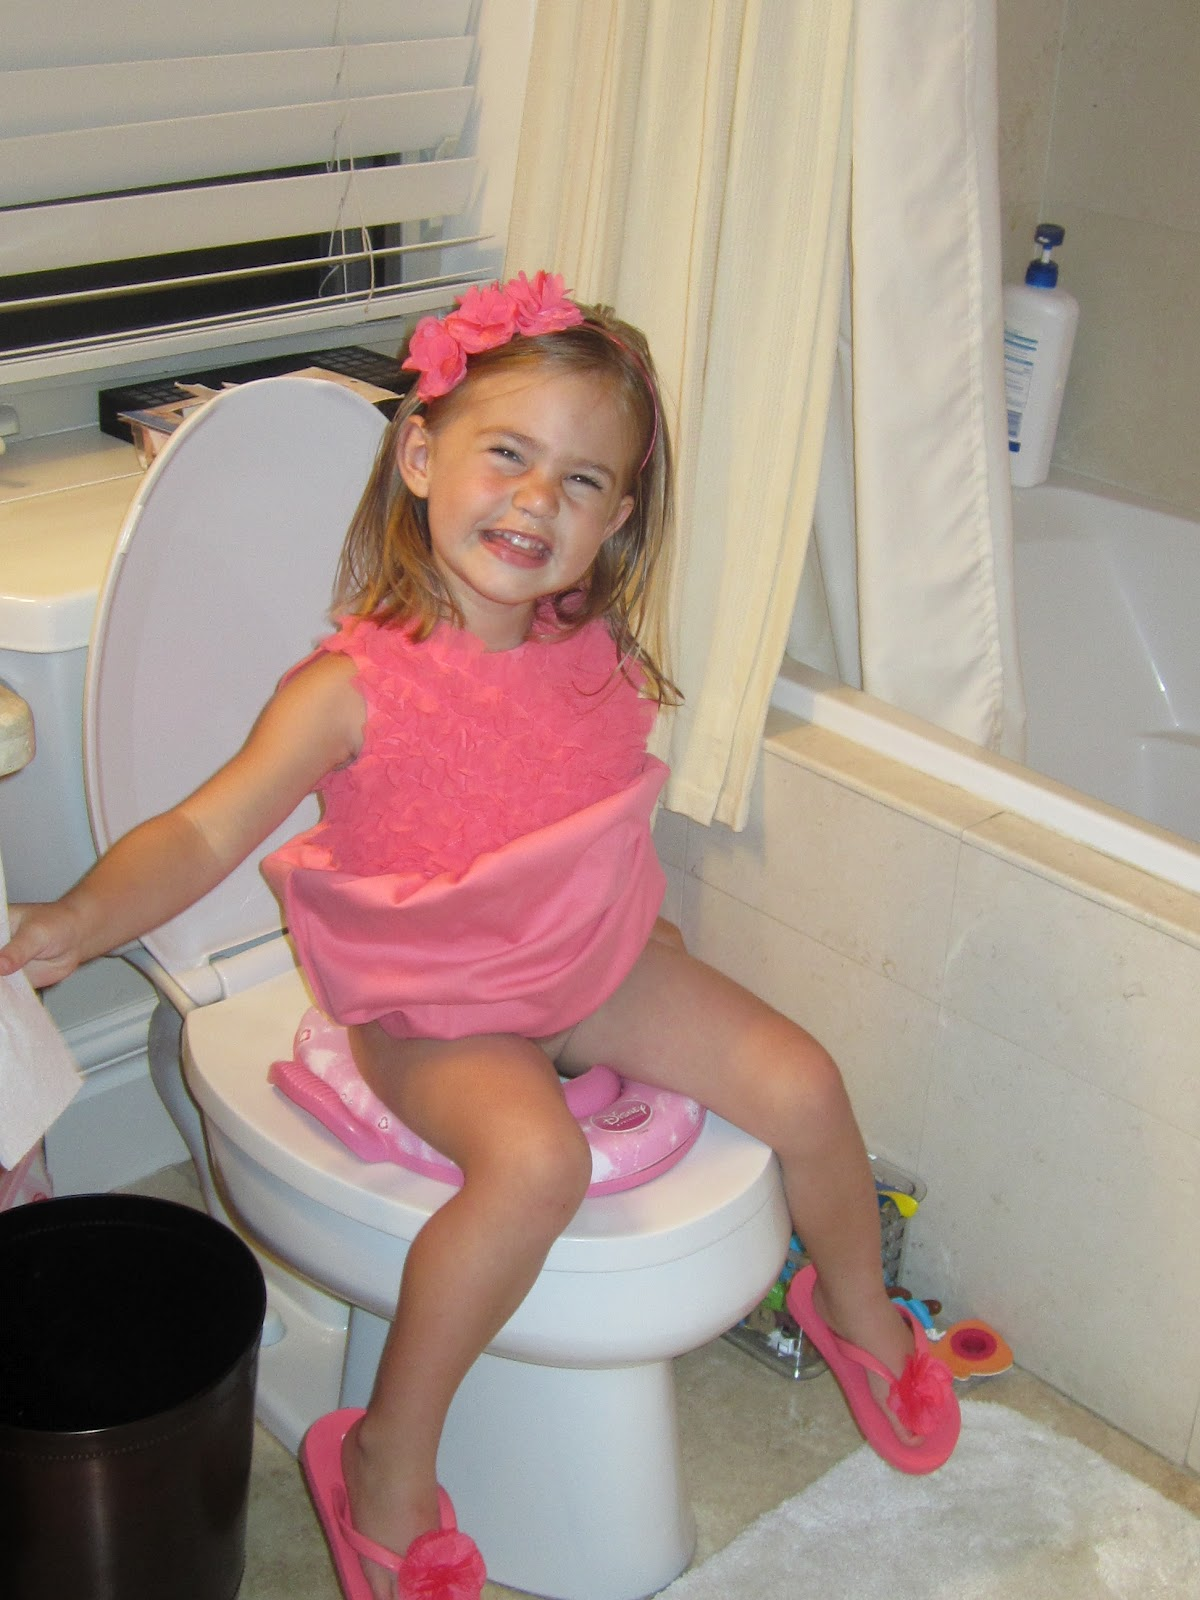 Hot diaper peeing wearing only socks bra and shirt 1 10